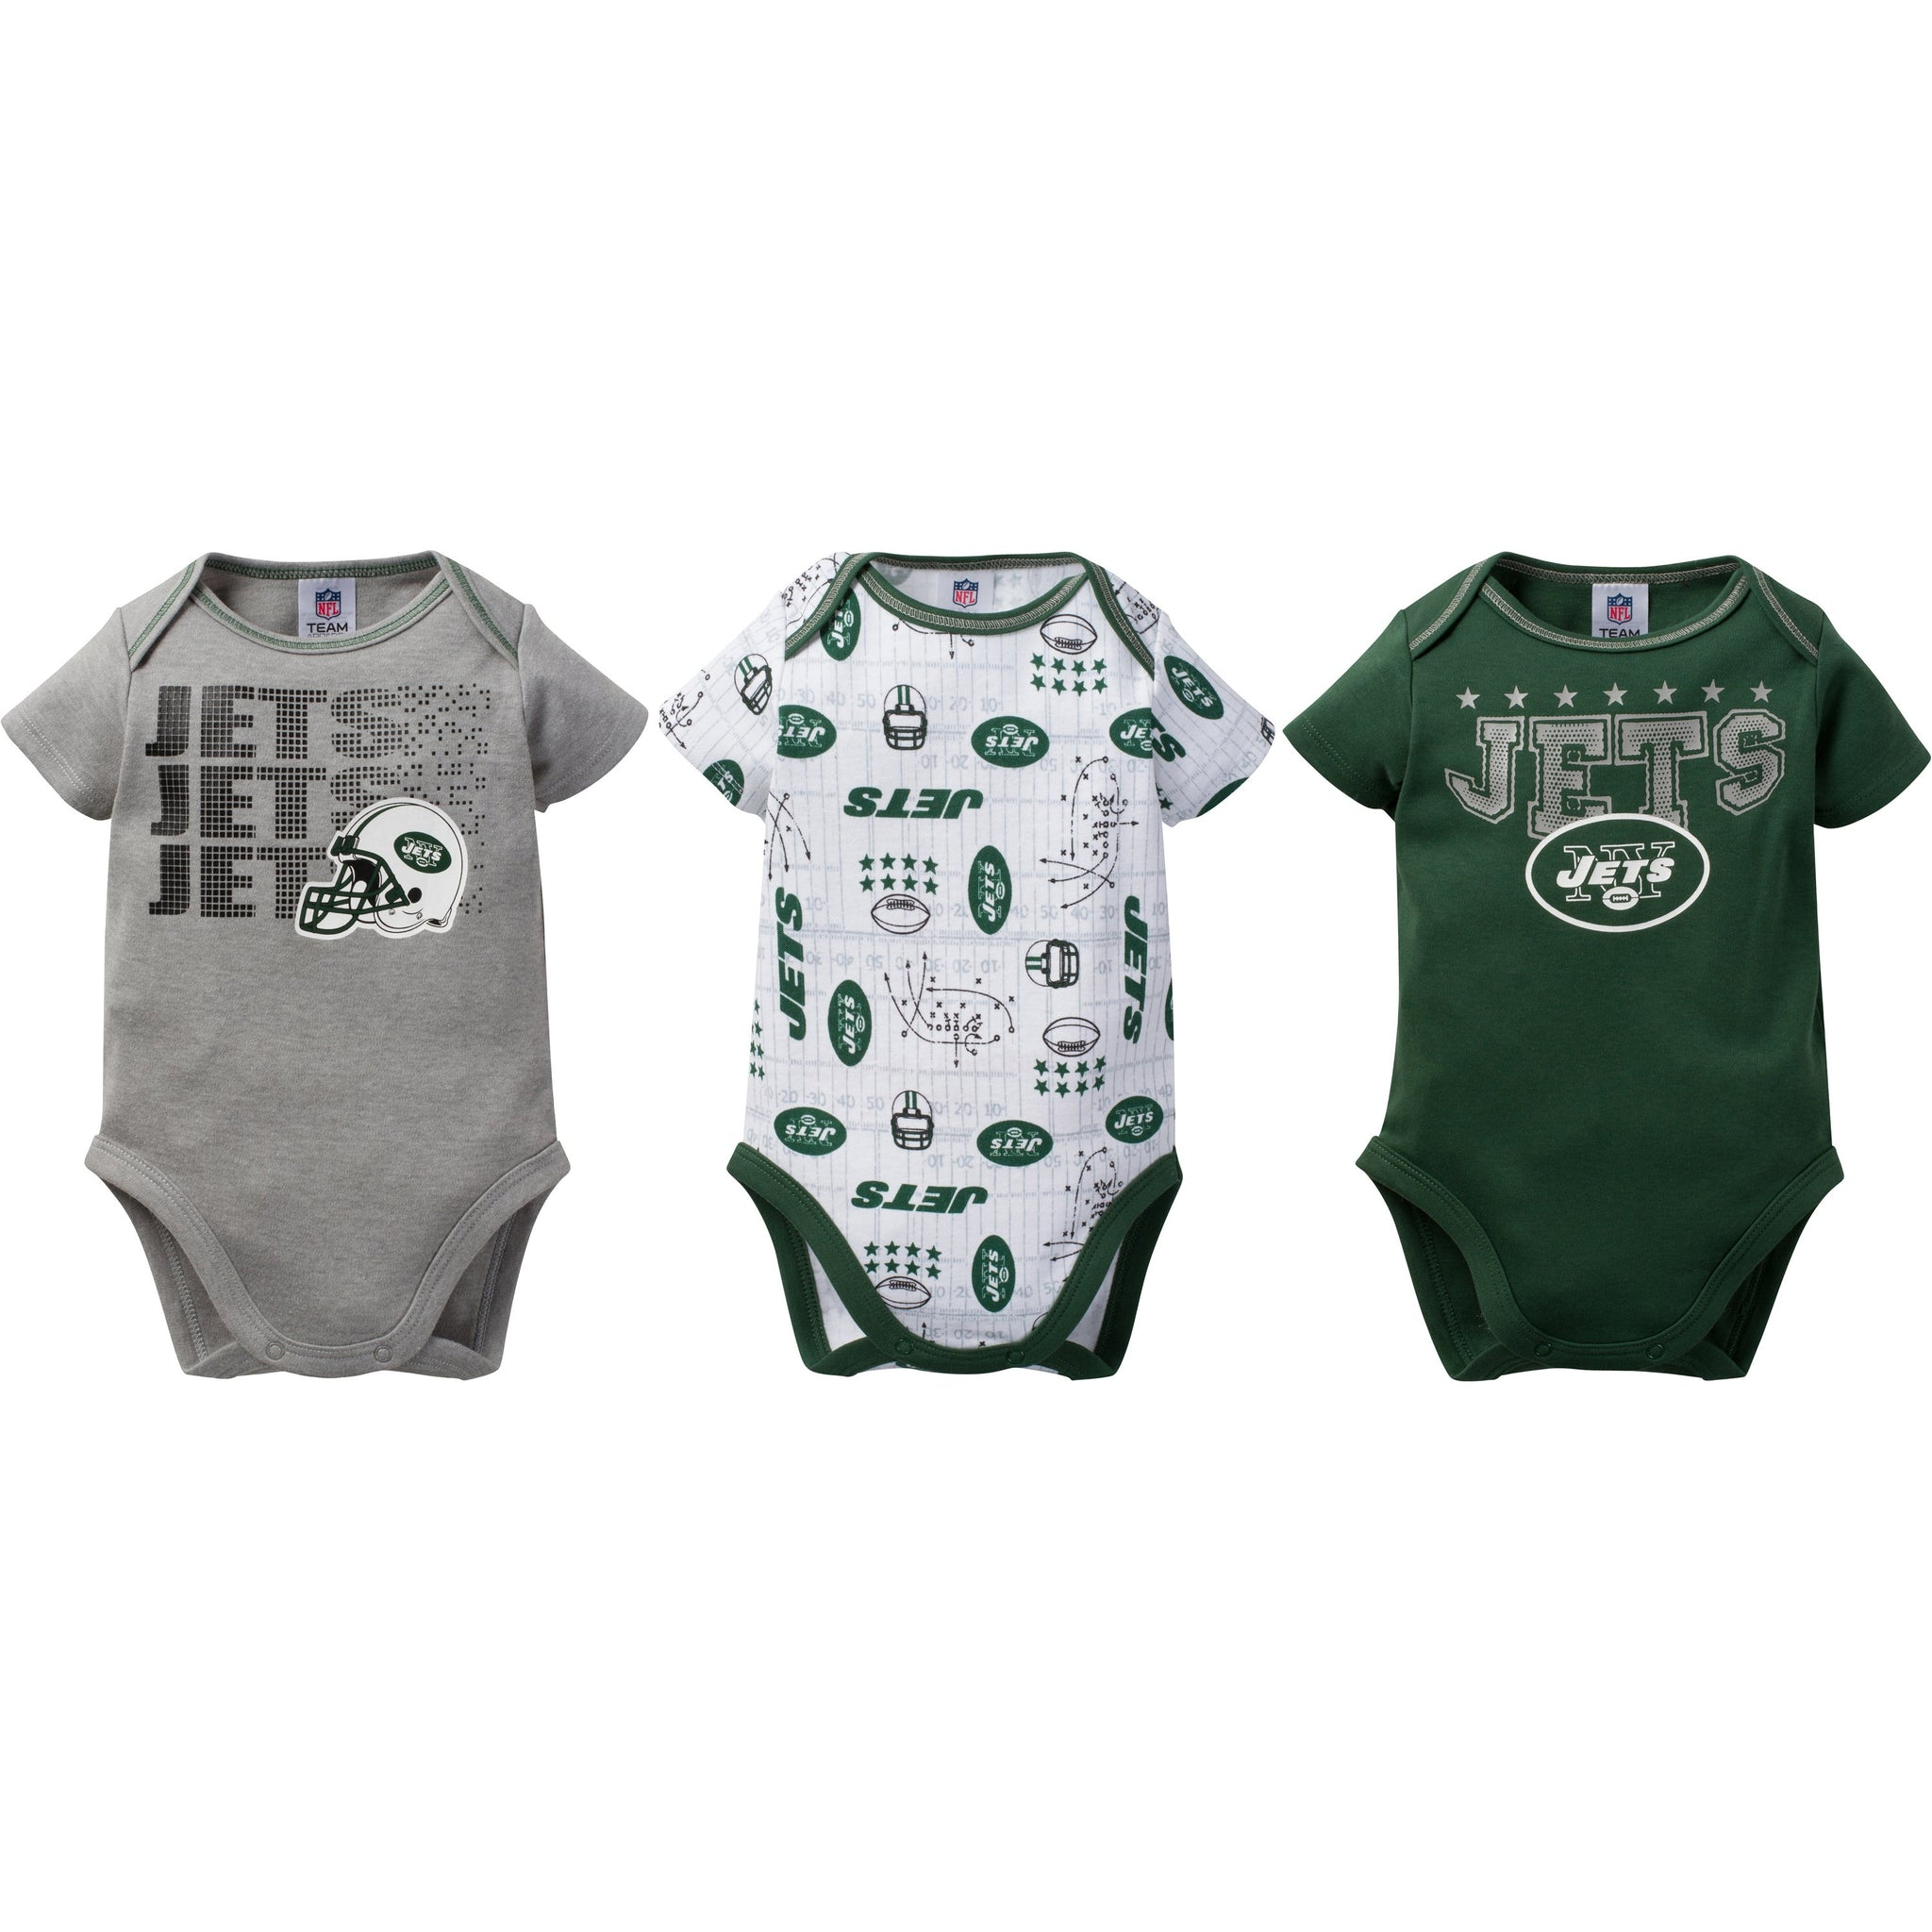 low priced a3713 fbf09 New York Jets Baby Clothes - Infant Girl & Boy Onesie ...